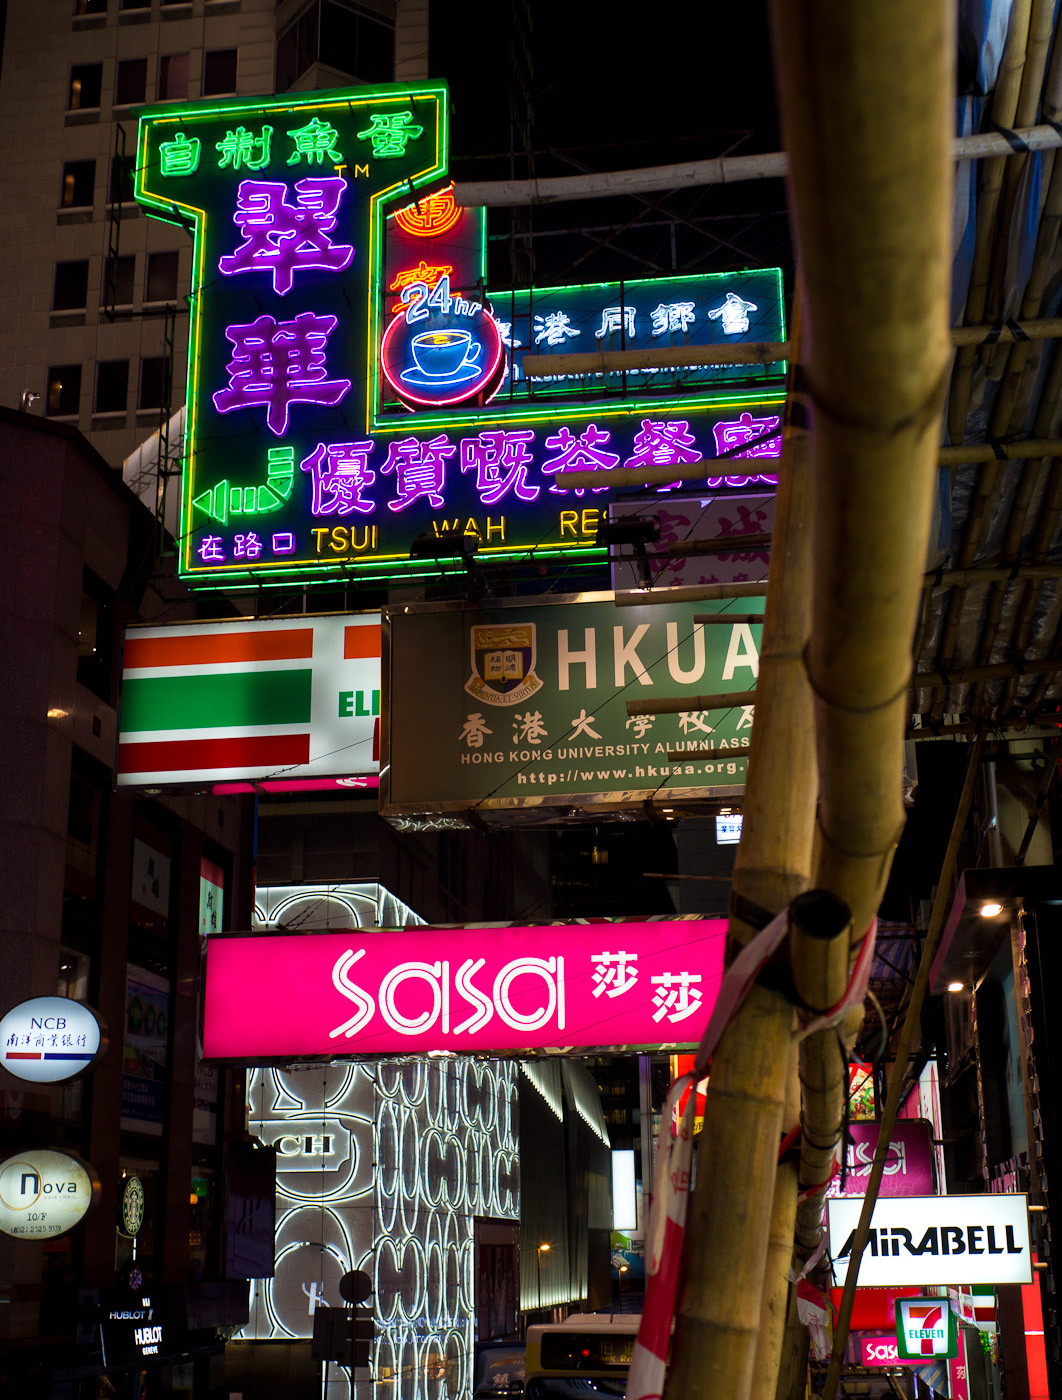 Dozens of neon brand lights in the streets of Hong-Kong at night. Sony NEX-5N